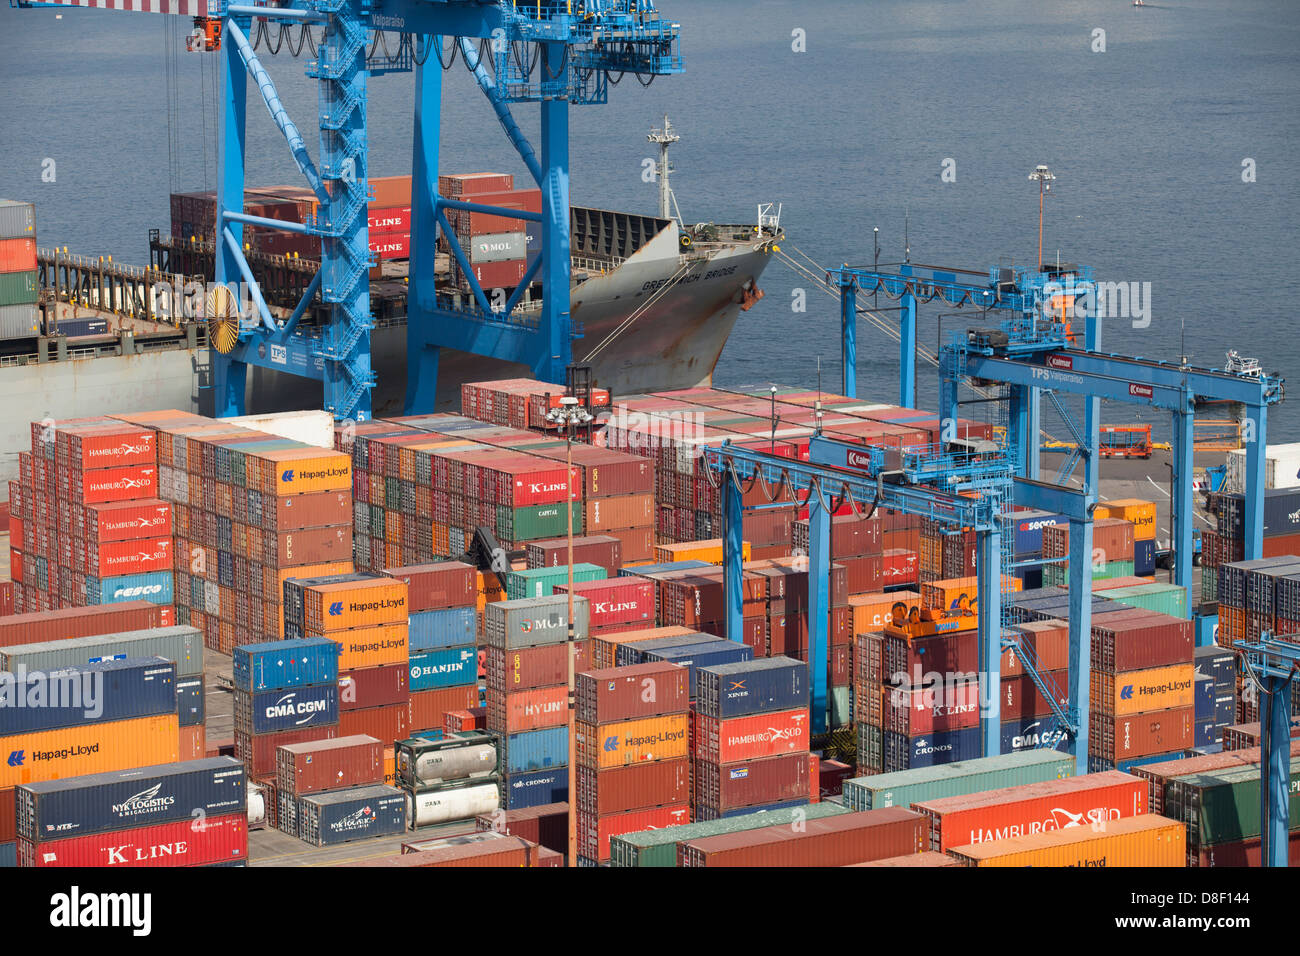 Valparaiso Port Containers - Stock Image